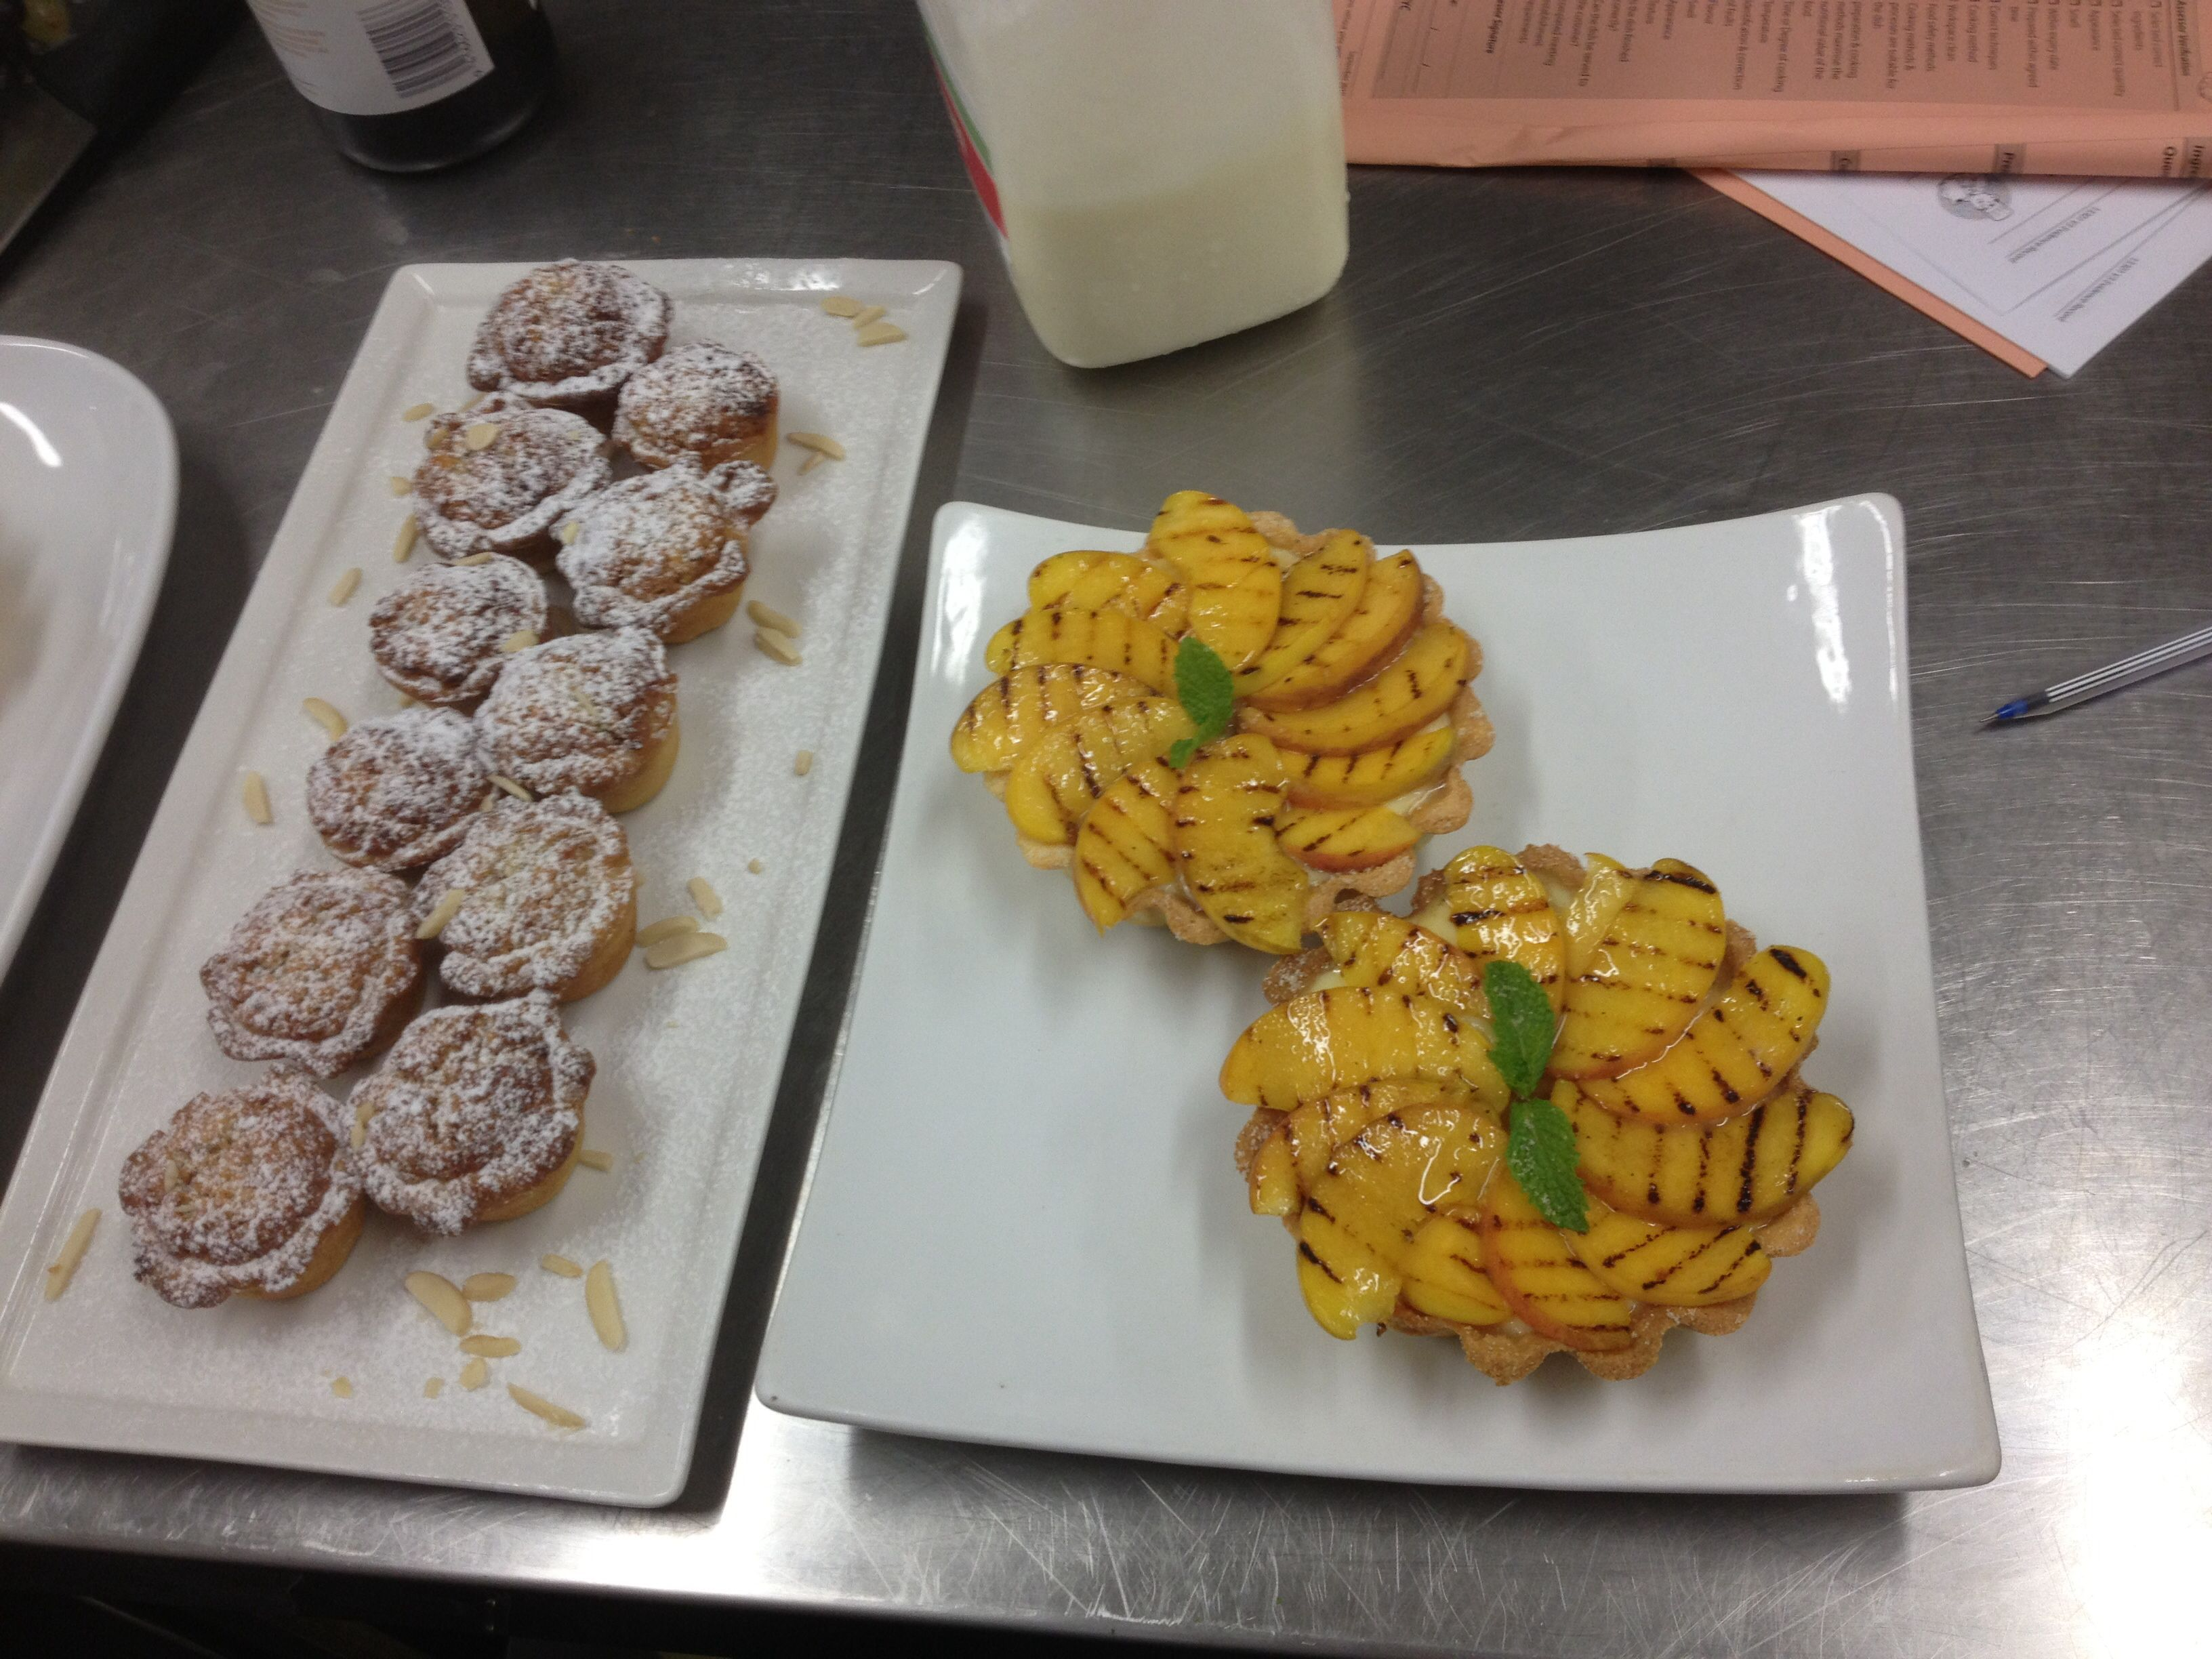 Almond butter tarts on the left and grilled peach tarts on